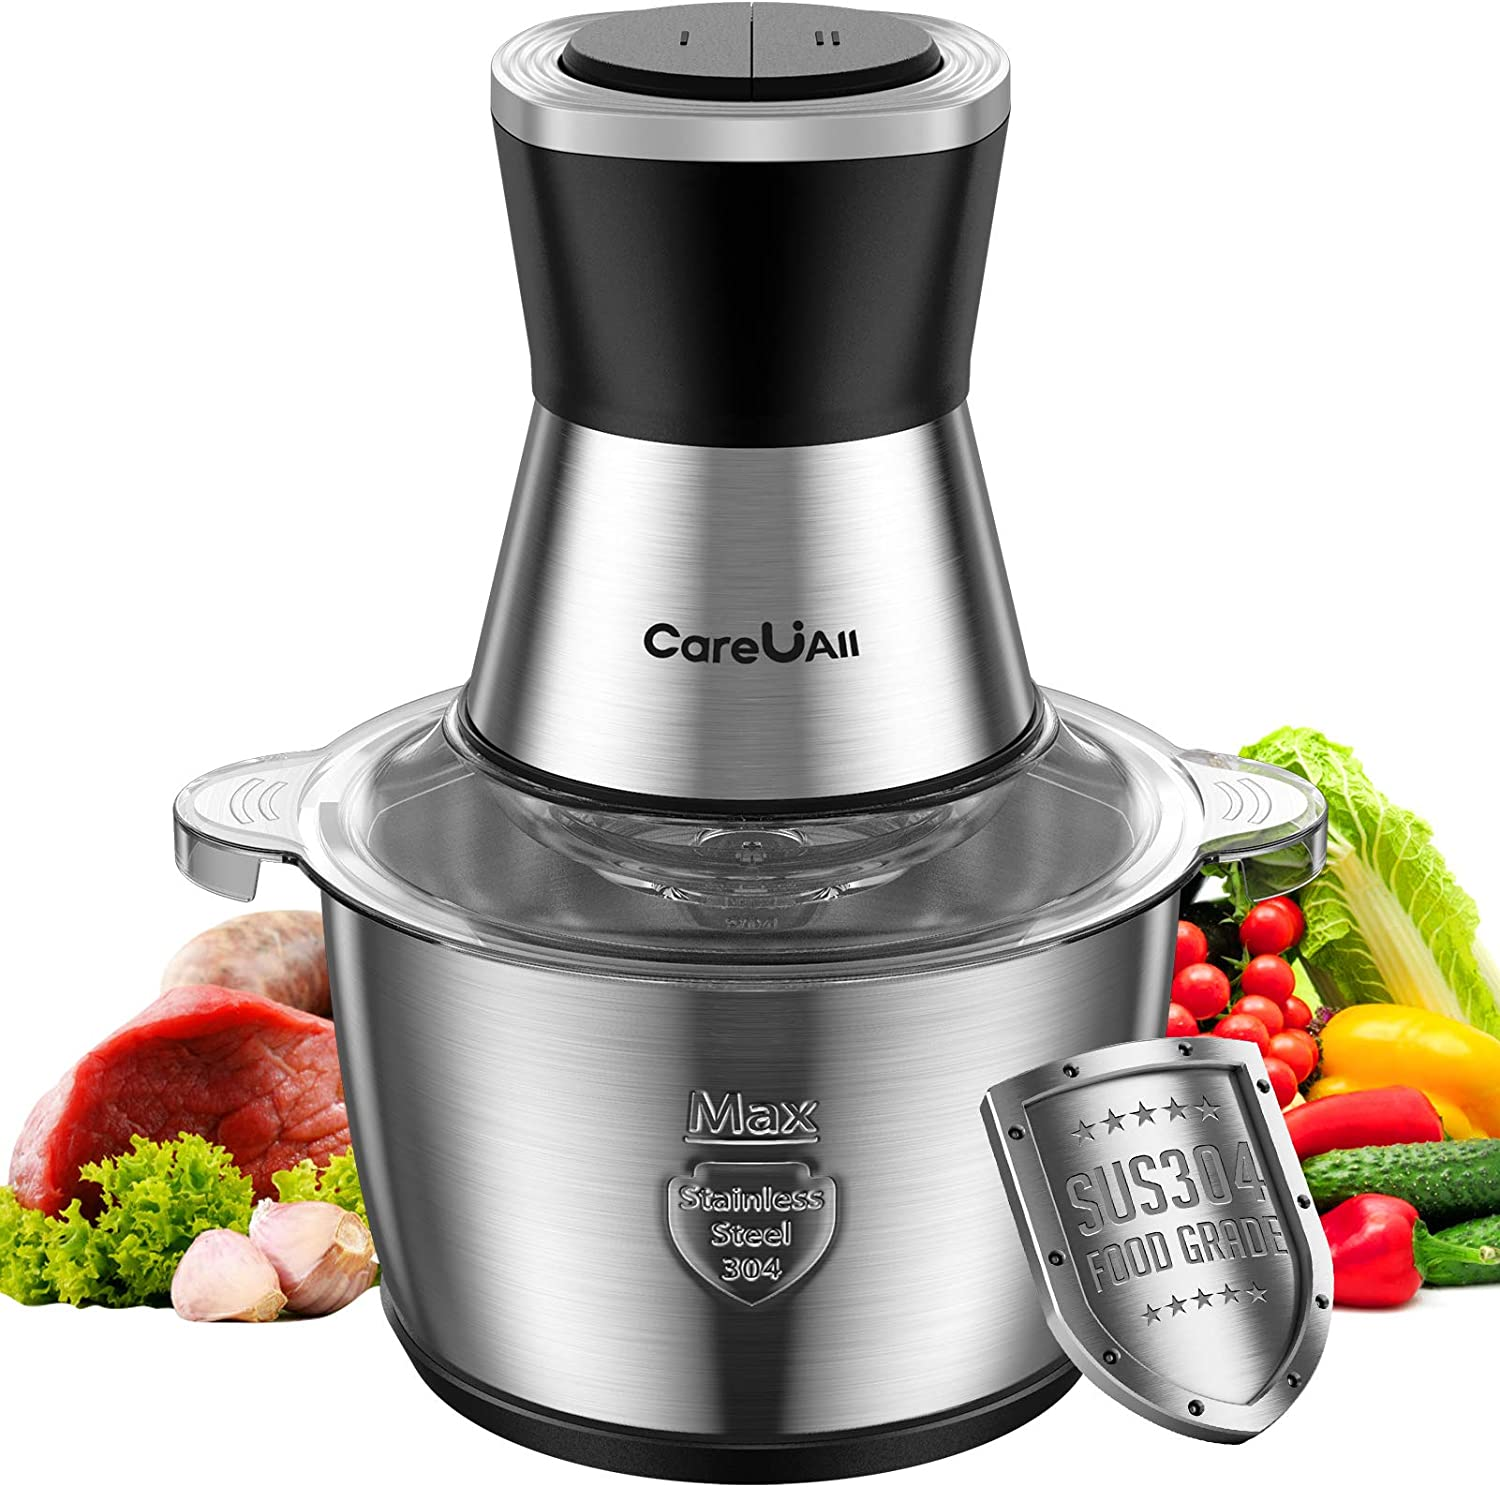 Electric Food Processor, 8 Cups Countertop Vegetable Chopper Meat Grinder Mincer for Fruits Nuts Spices 2L Food Grade Stainless Steel Bowl 4 Sharp Blades 400W Max Motor Efficient Kitchen Appliance